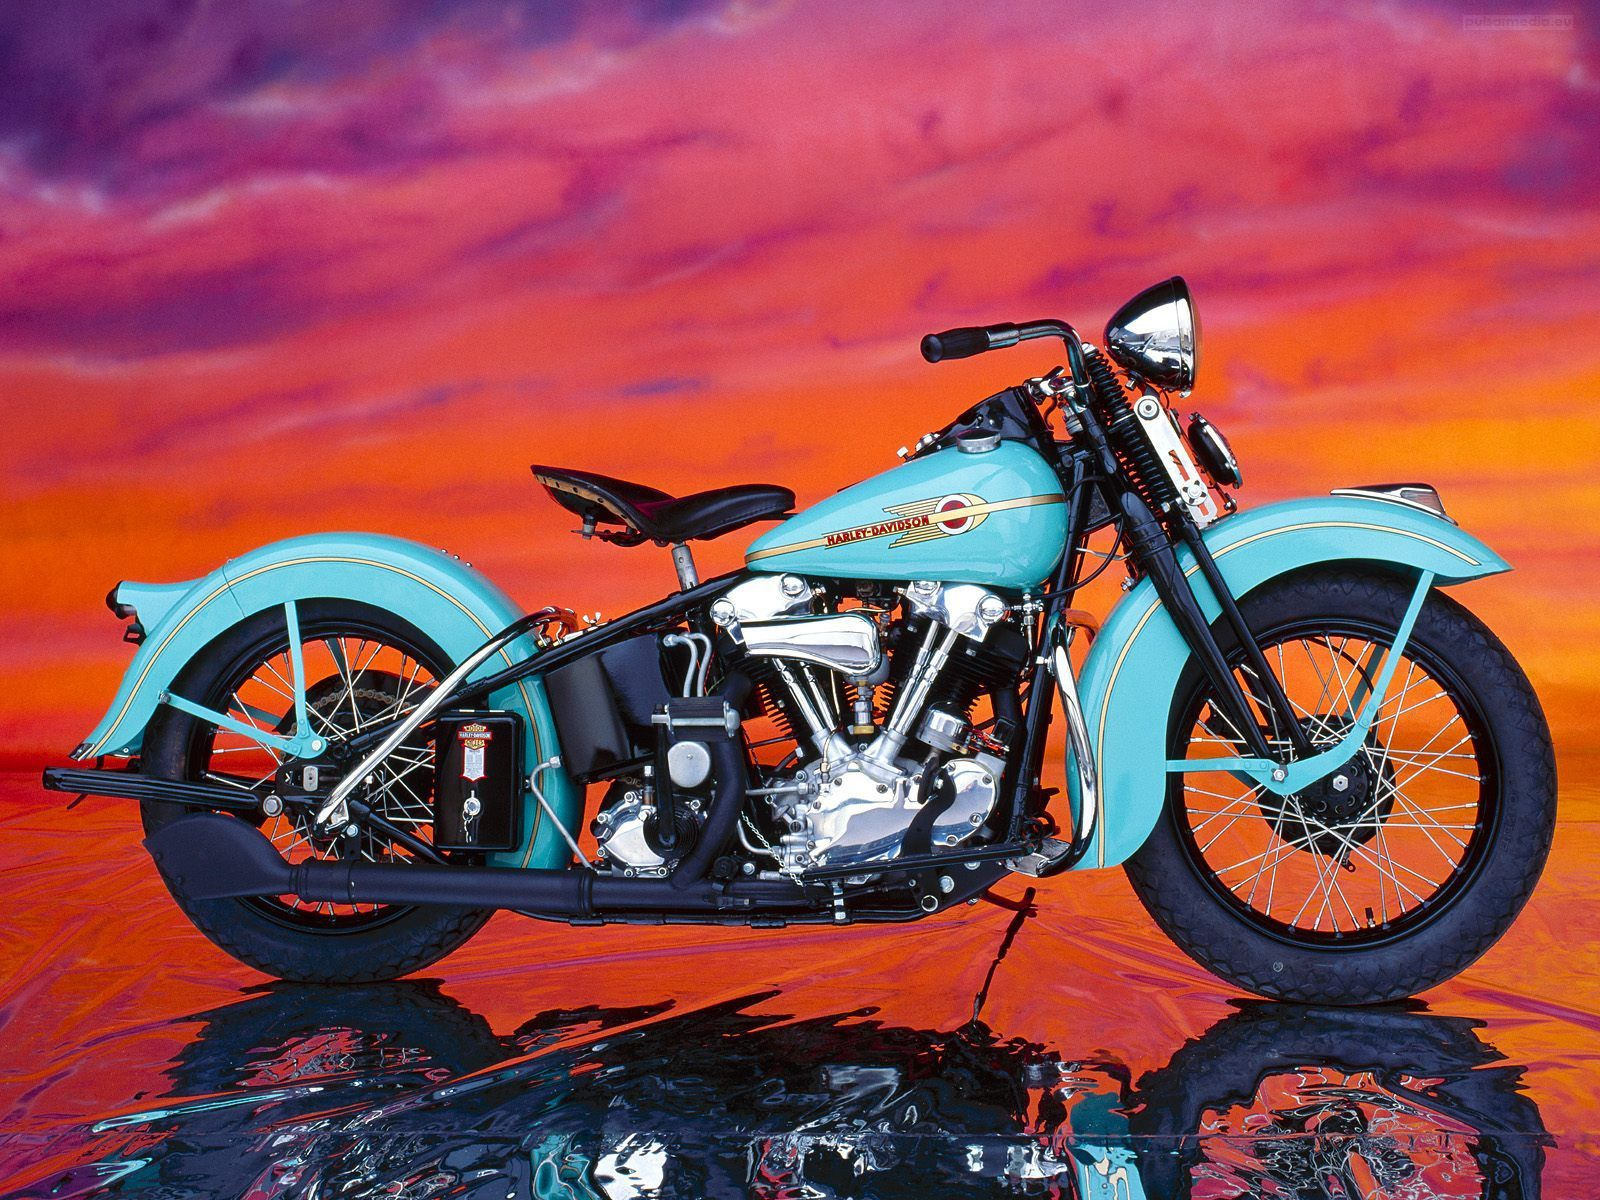 Old School Harley Davidson Motorcycle Wallpapers